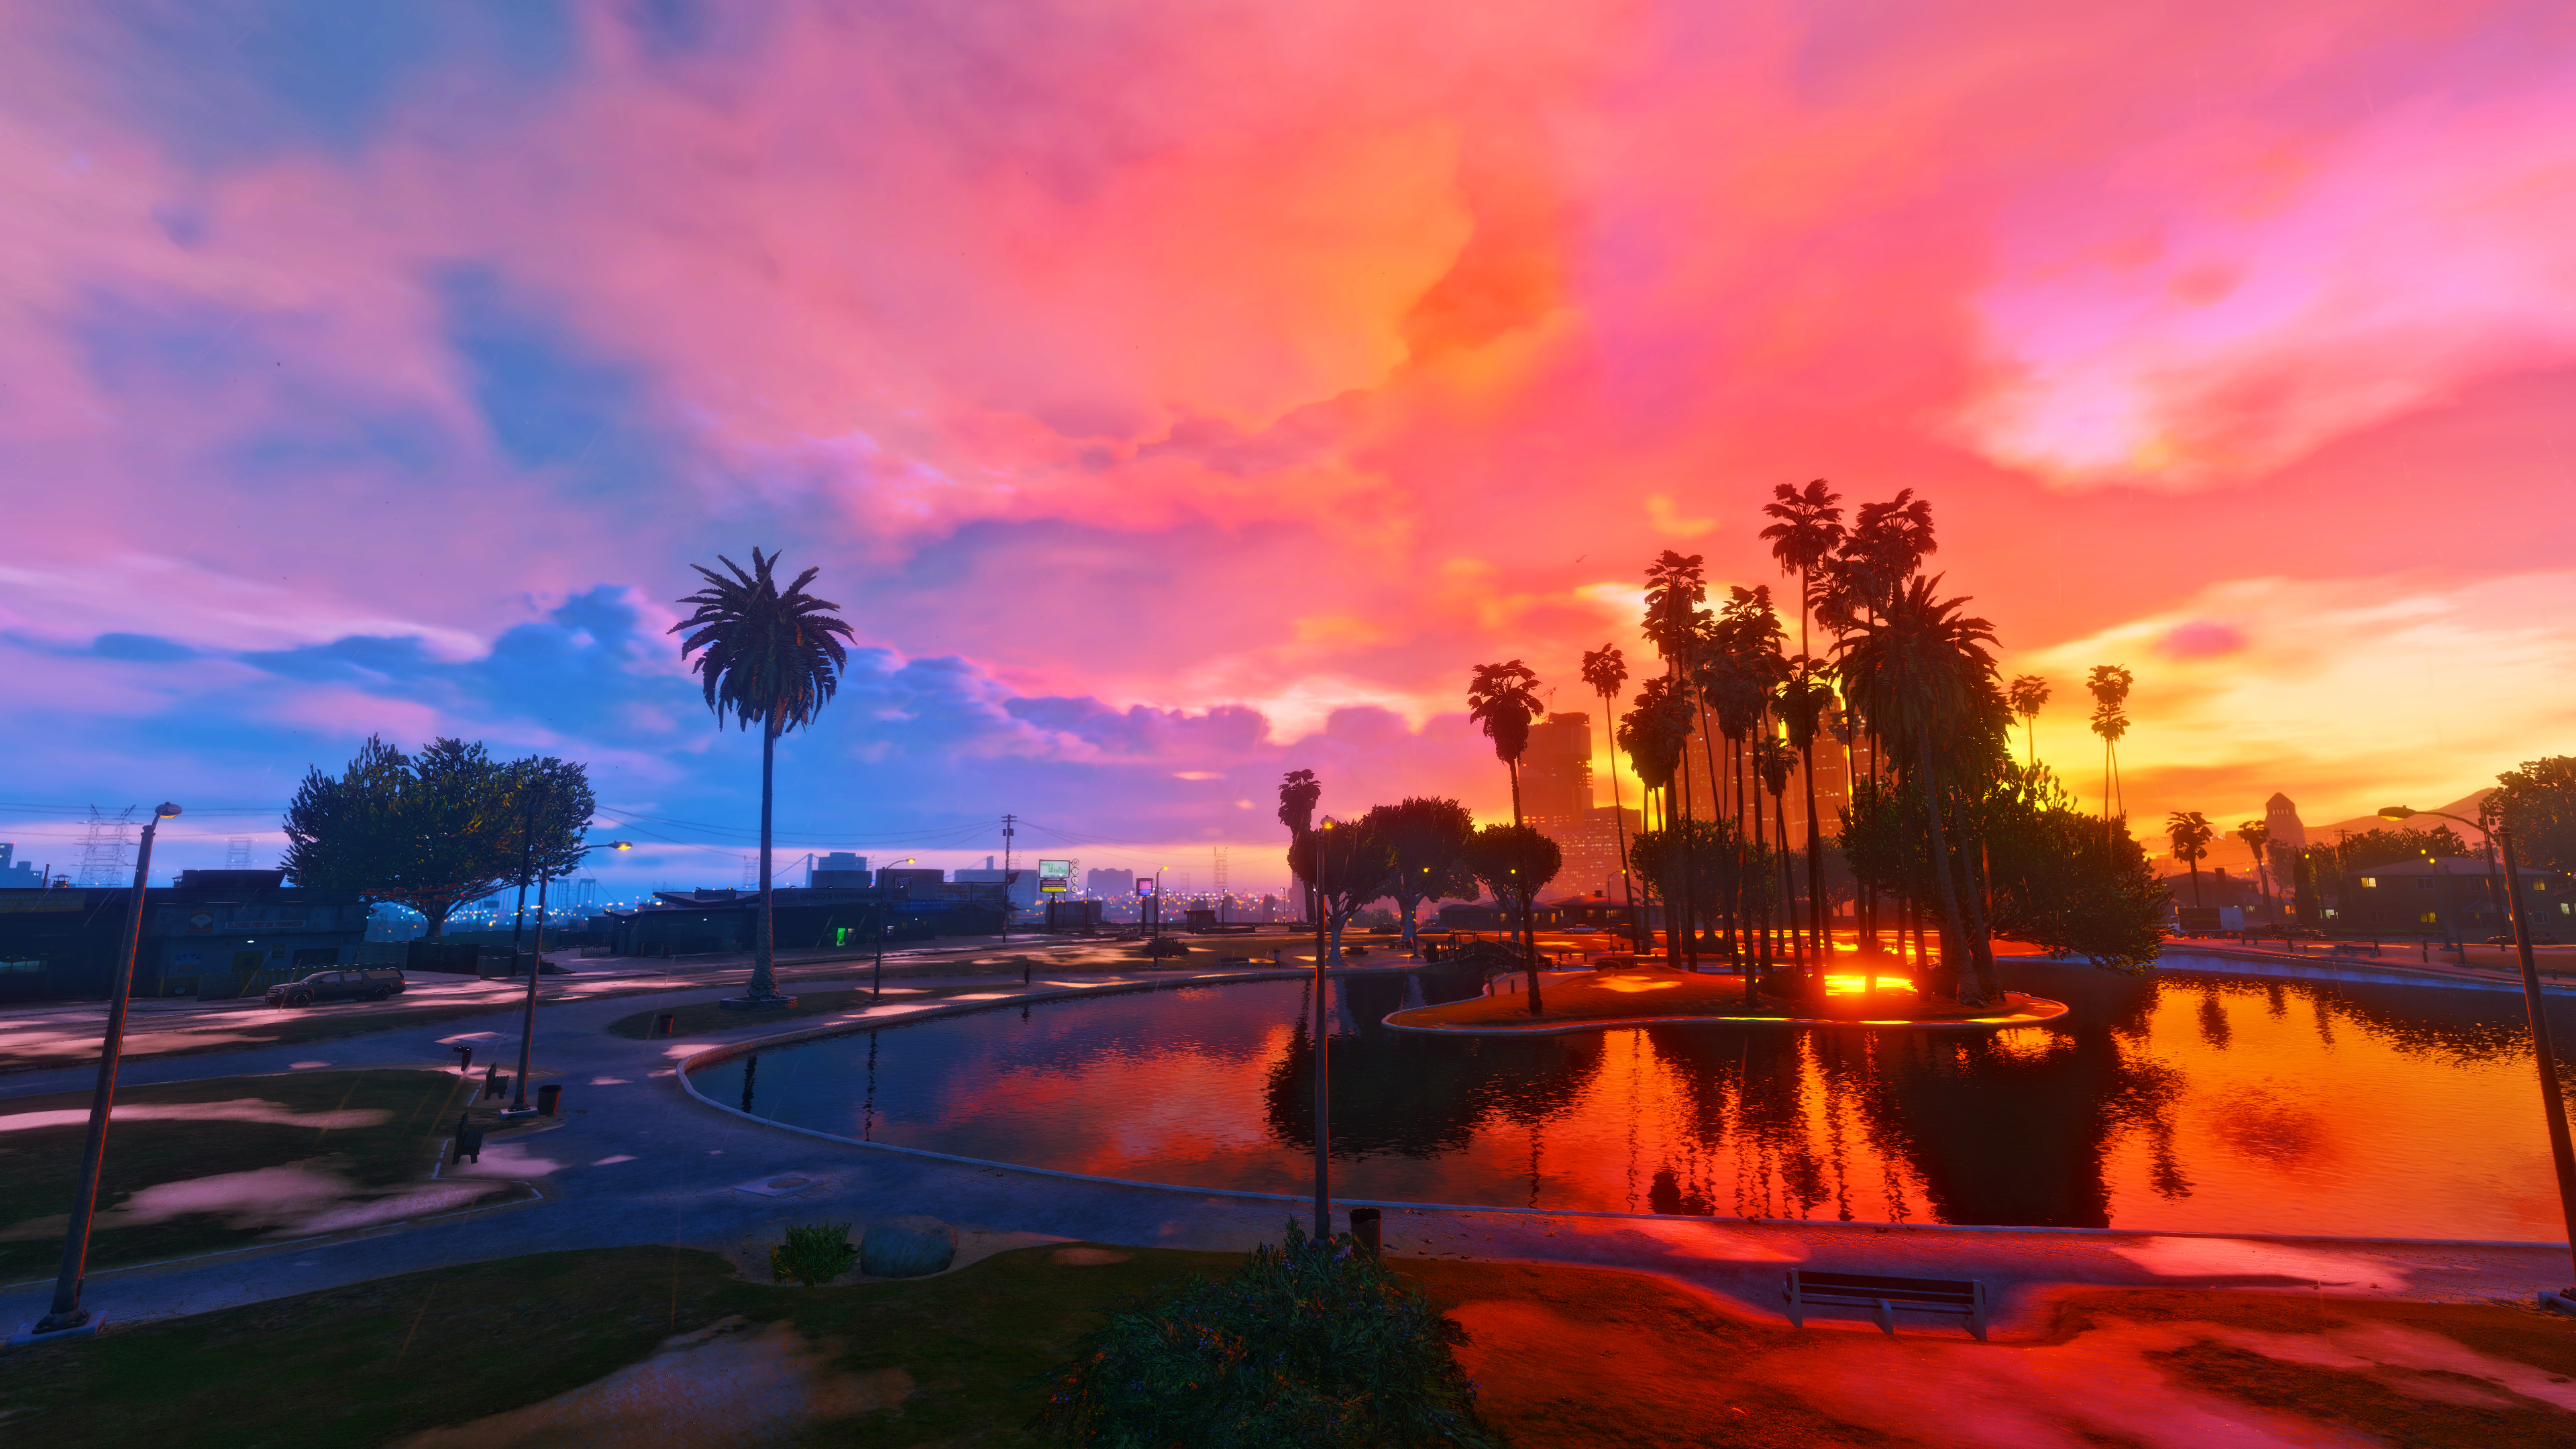 Gta V Sunset Rainy Wallpapers 4k By Eeveeone On Deviantart